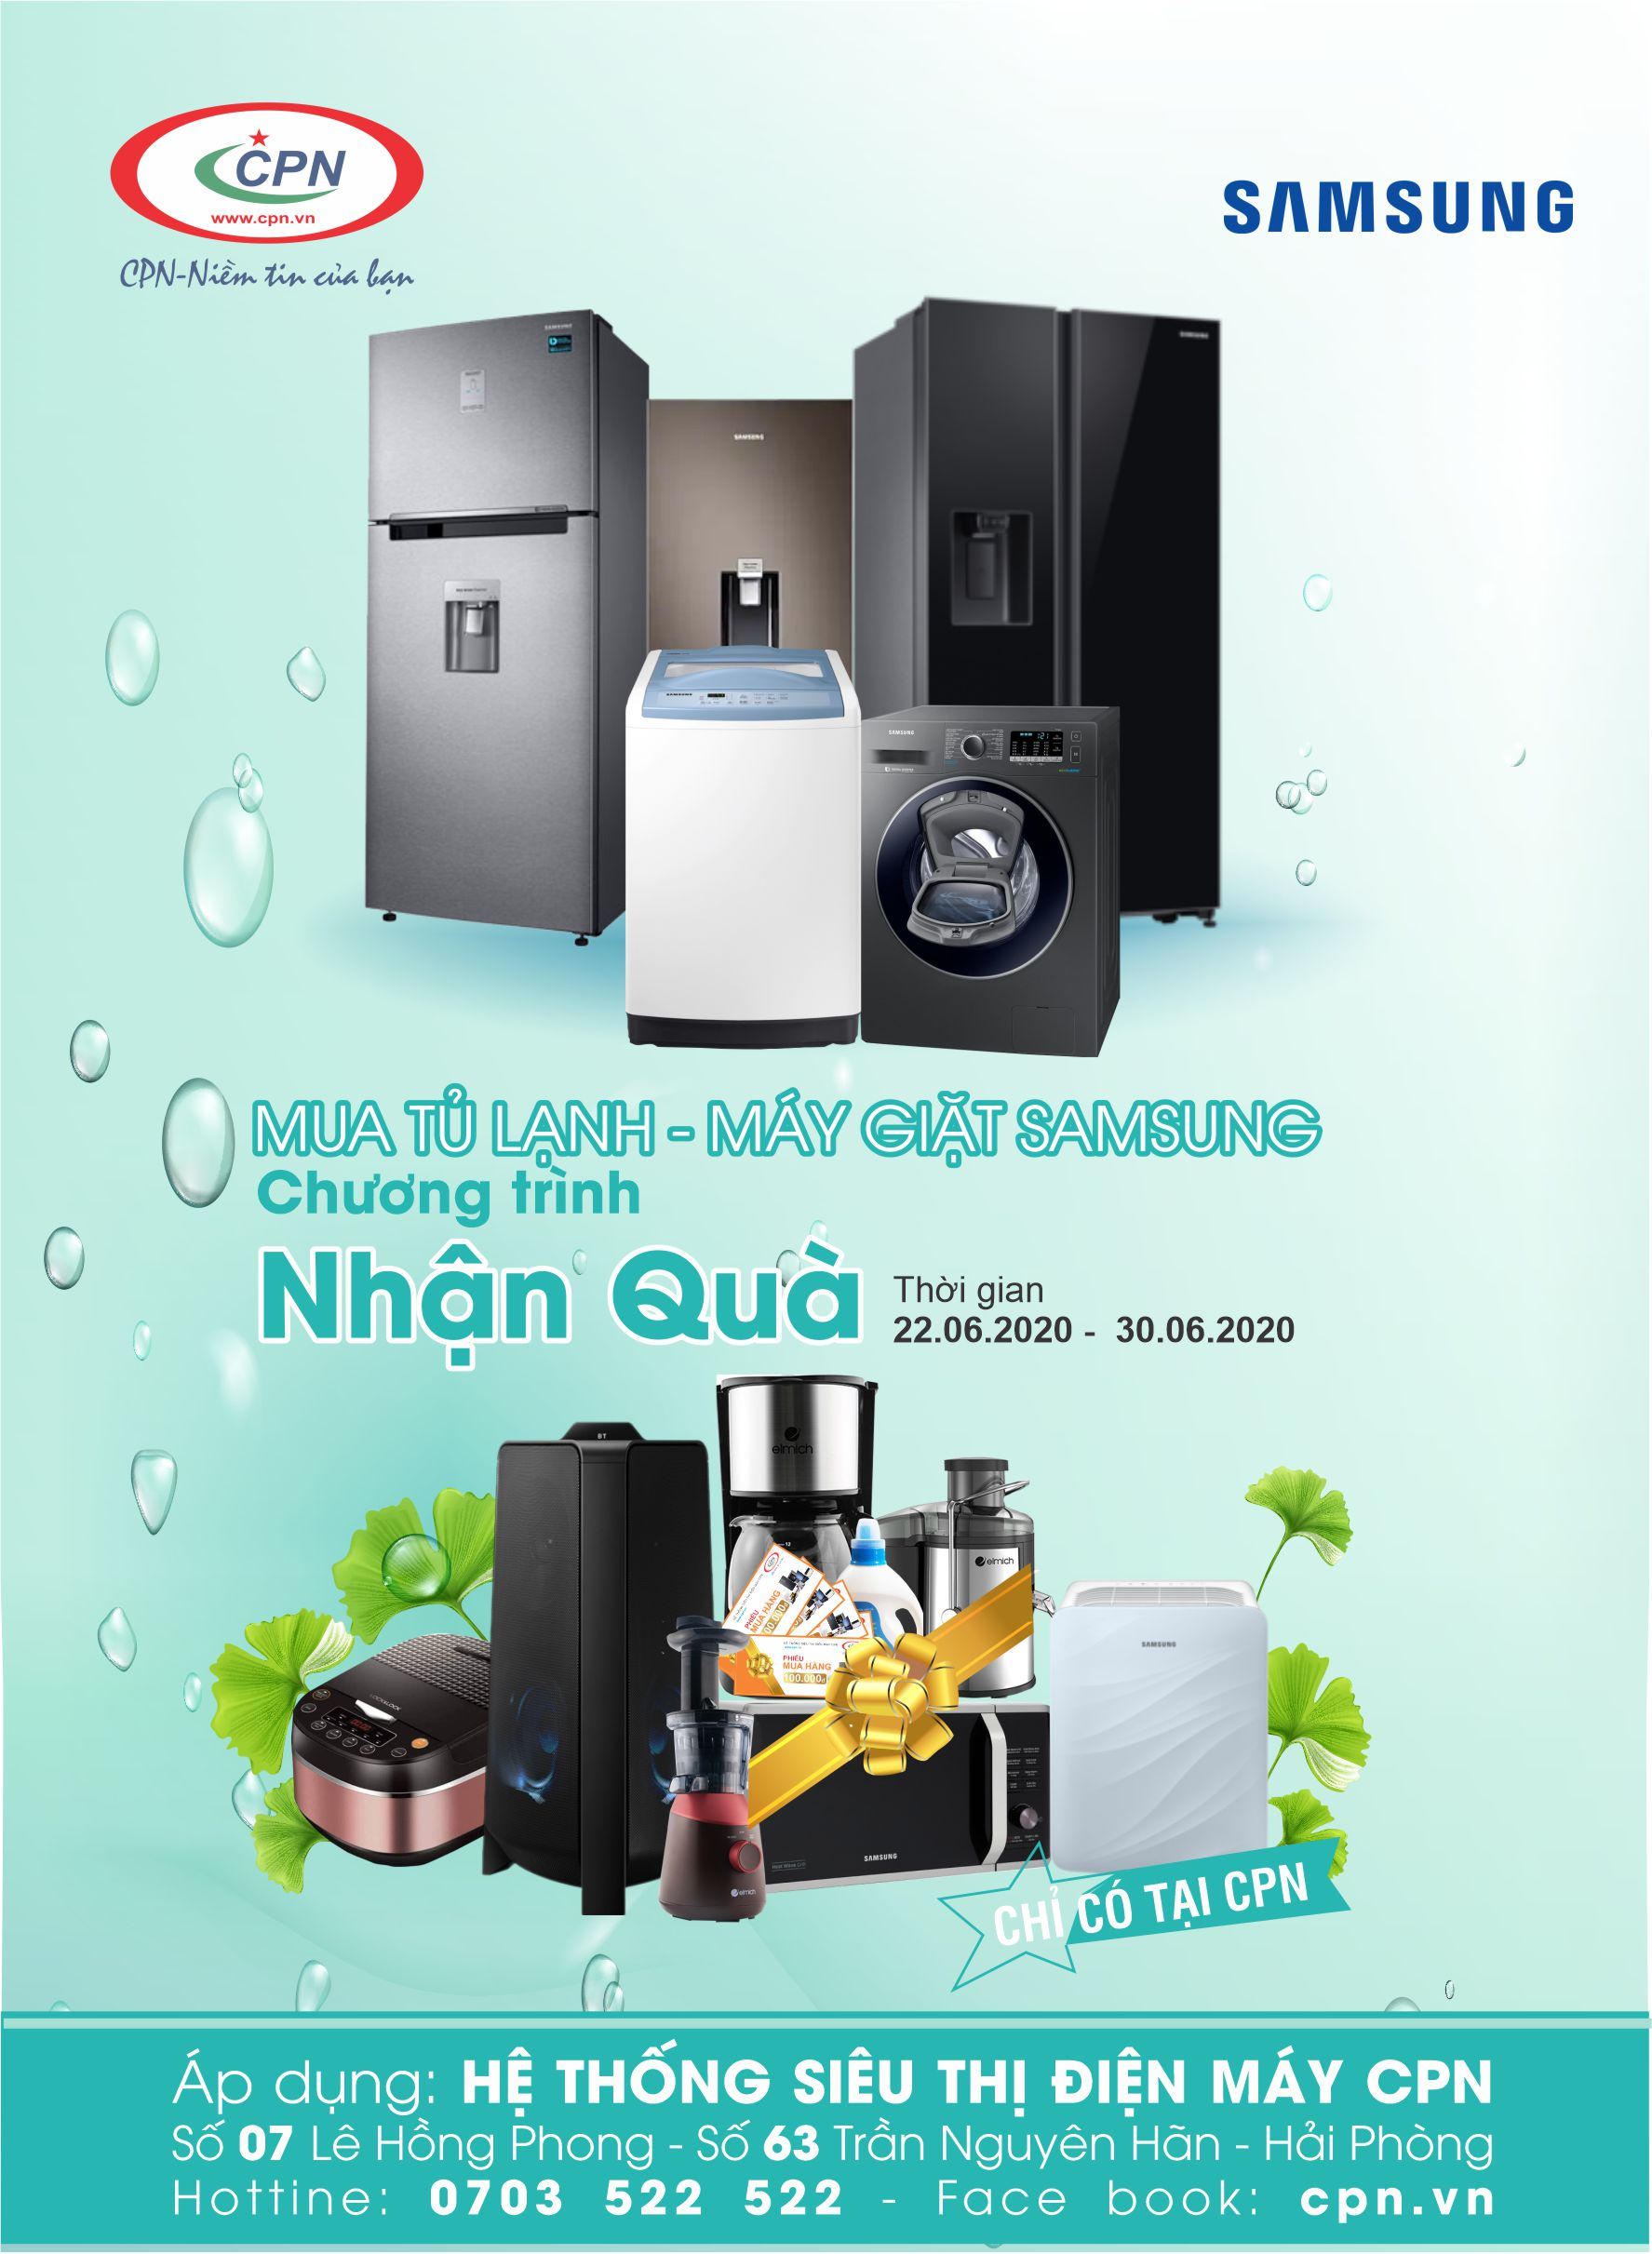 samsung-ha-report-062020-flyer.jpg